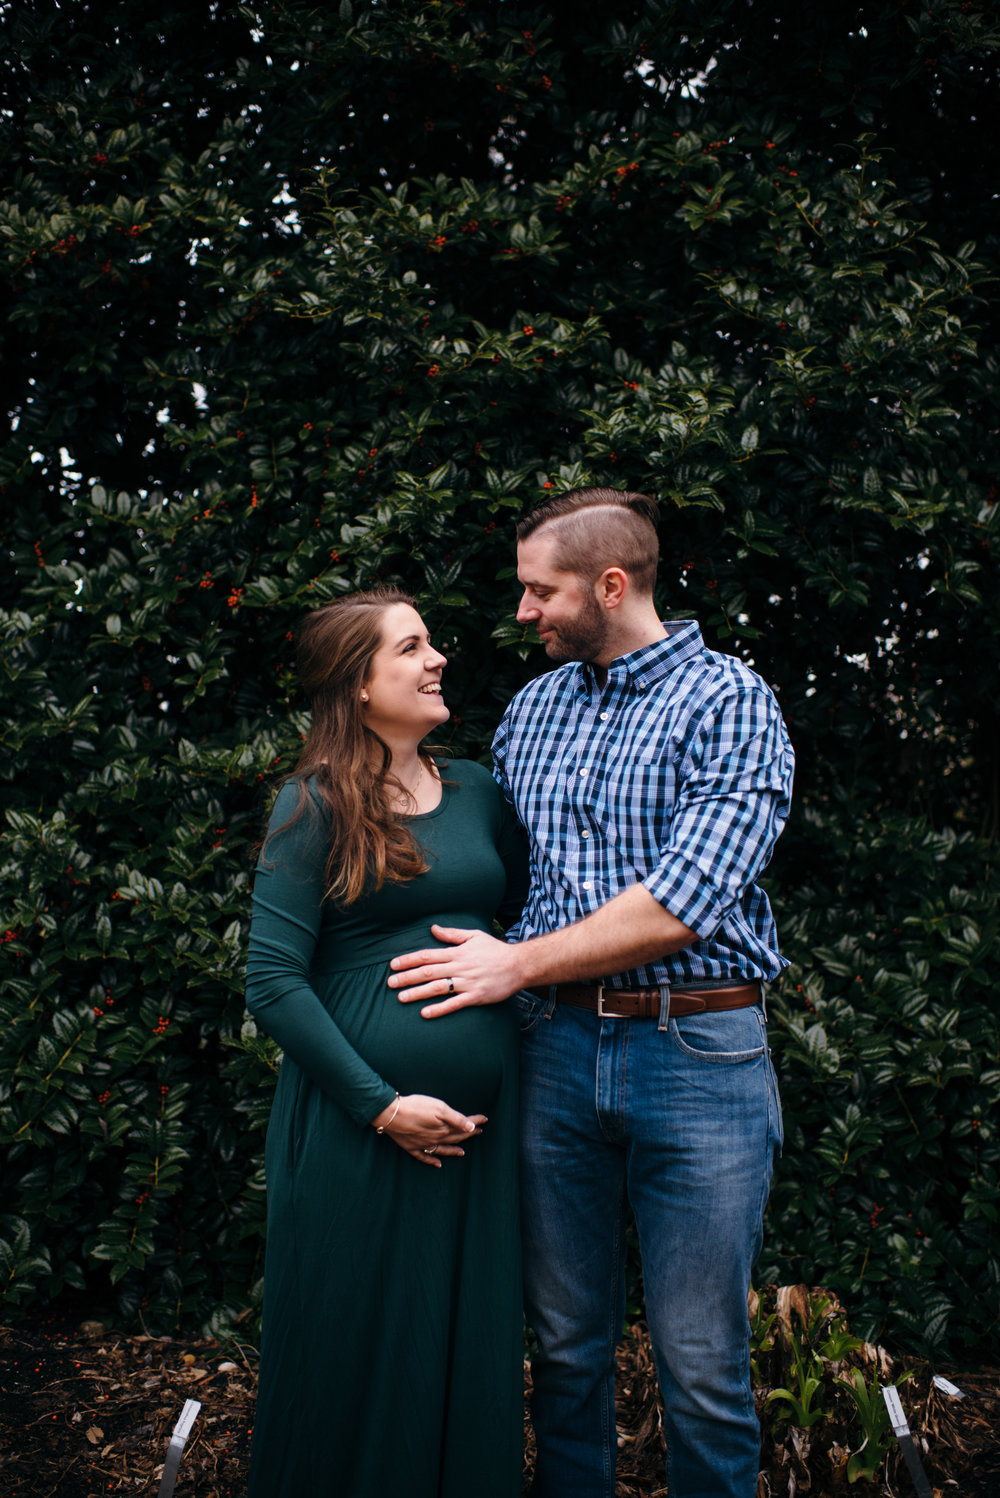 Raleigh Maternity Photography - JC Raulston Maternity Session - North Carolina Family Photographer - Durham Family Photographer - Raleigh Family Photographer